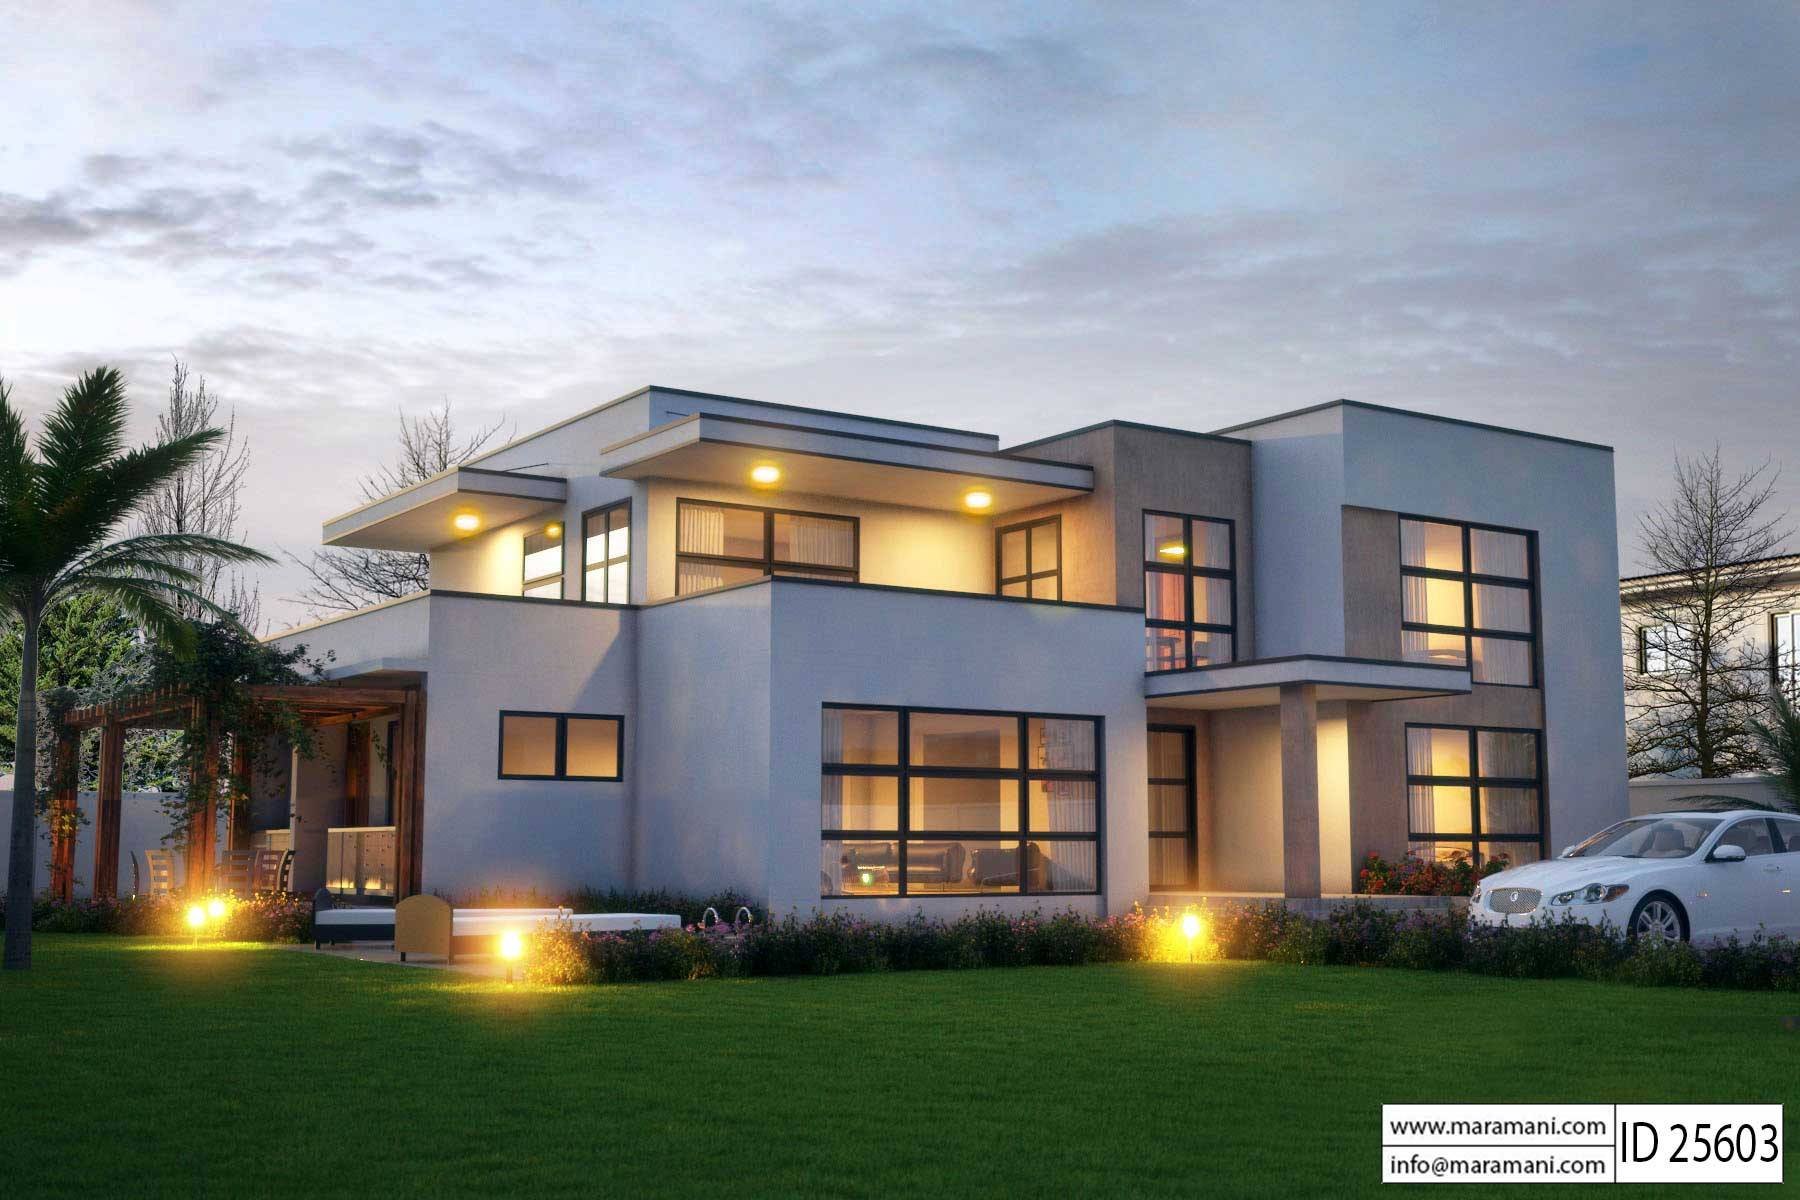 Modern 5 bedroom house design id 25603 floor plans by for 5 bedroom modern farmhouse plans